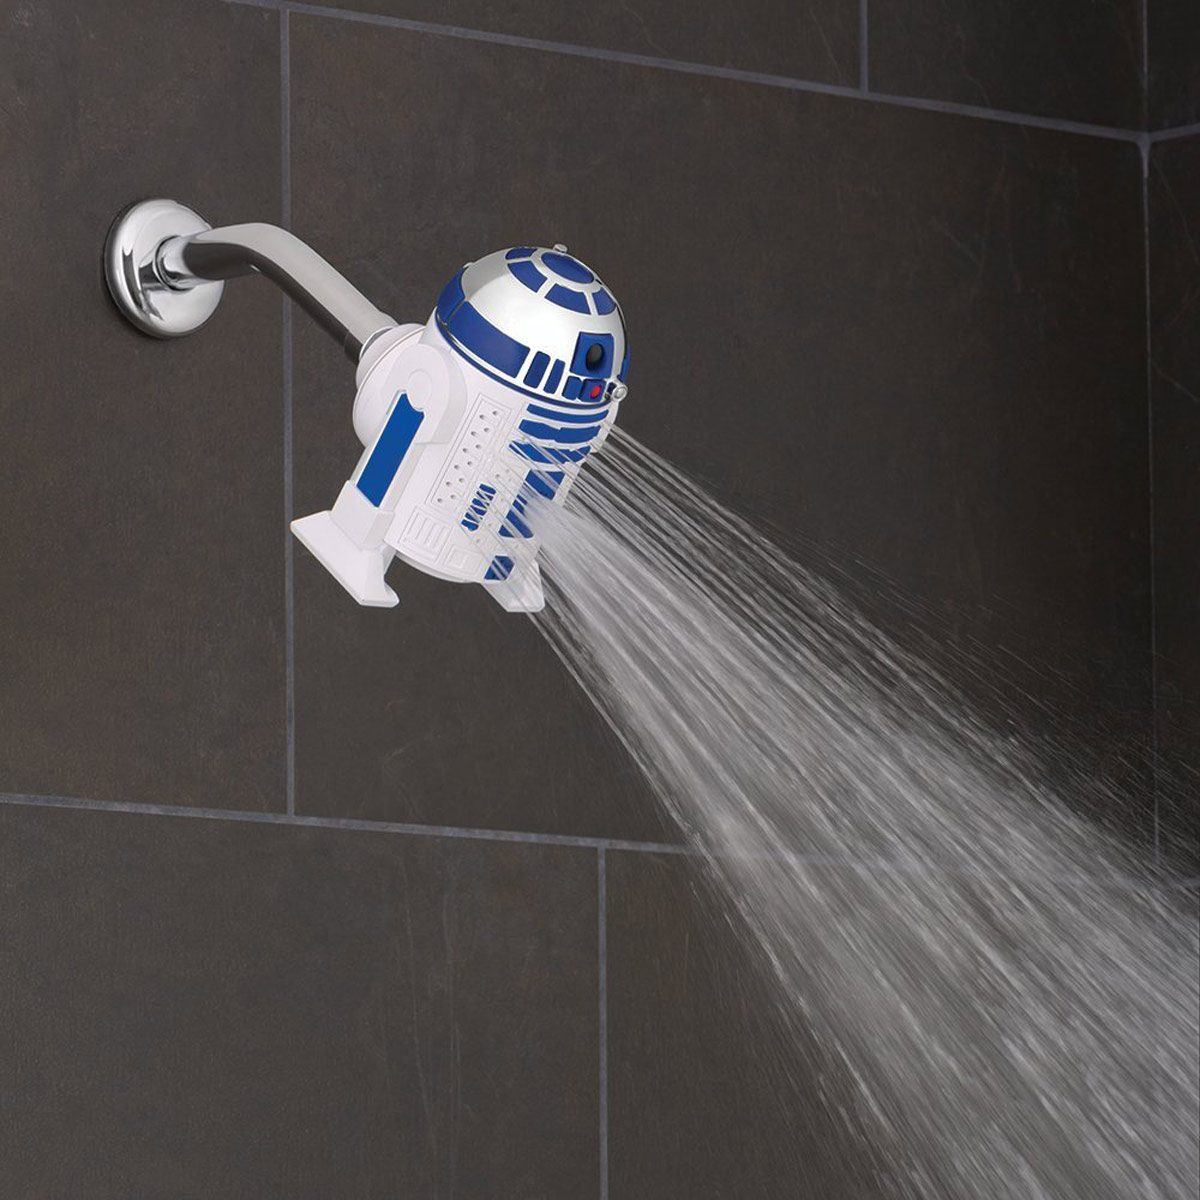 star wars r2d2 showerhead